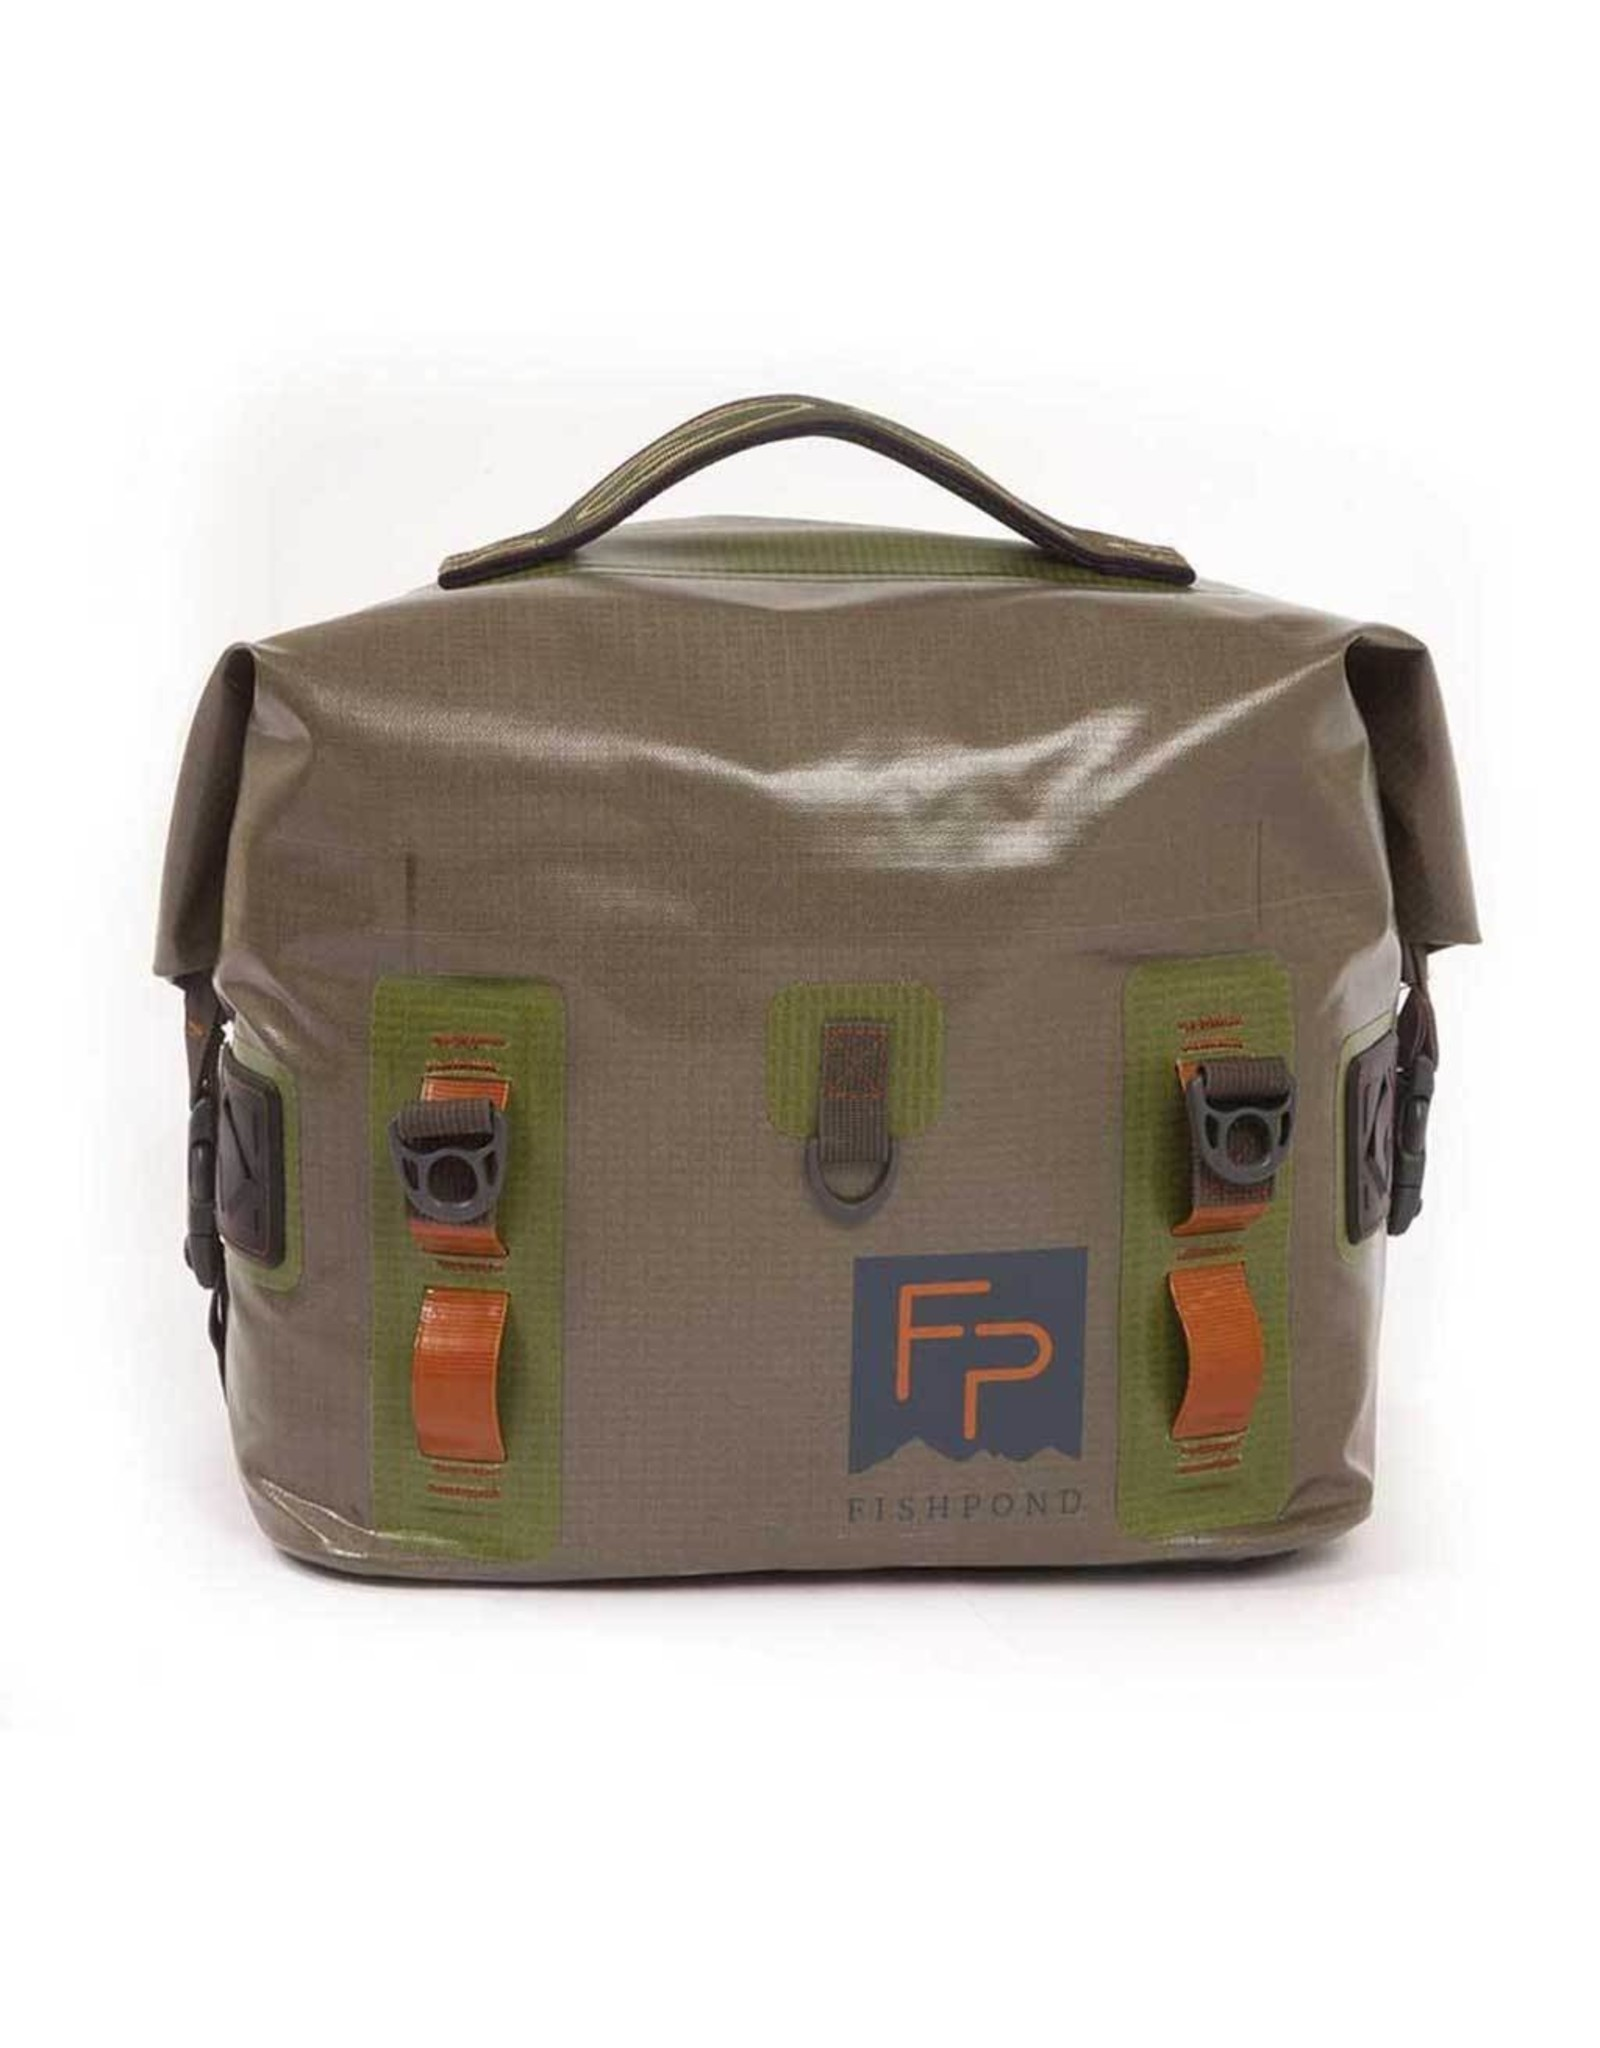 Fishpond Fishpond - Castaway Roll -Top Gear Bag - Discontinued Version